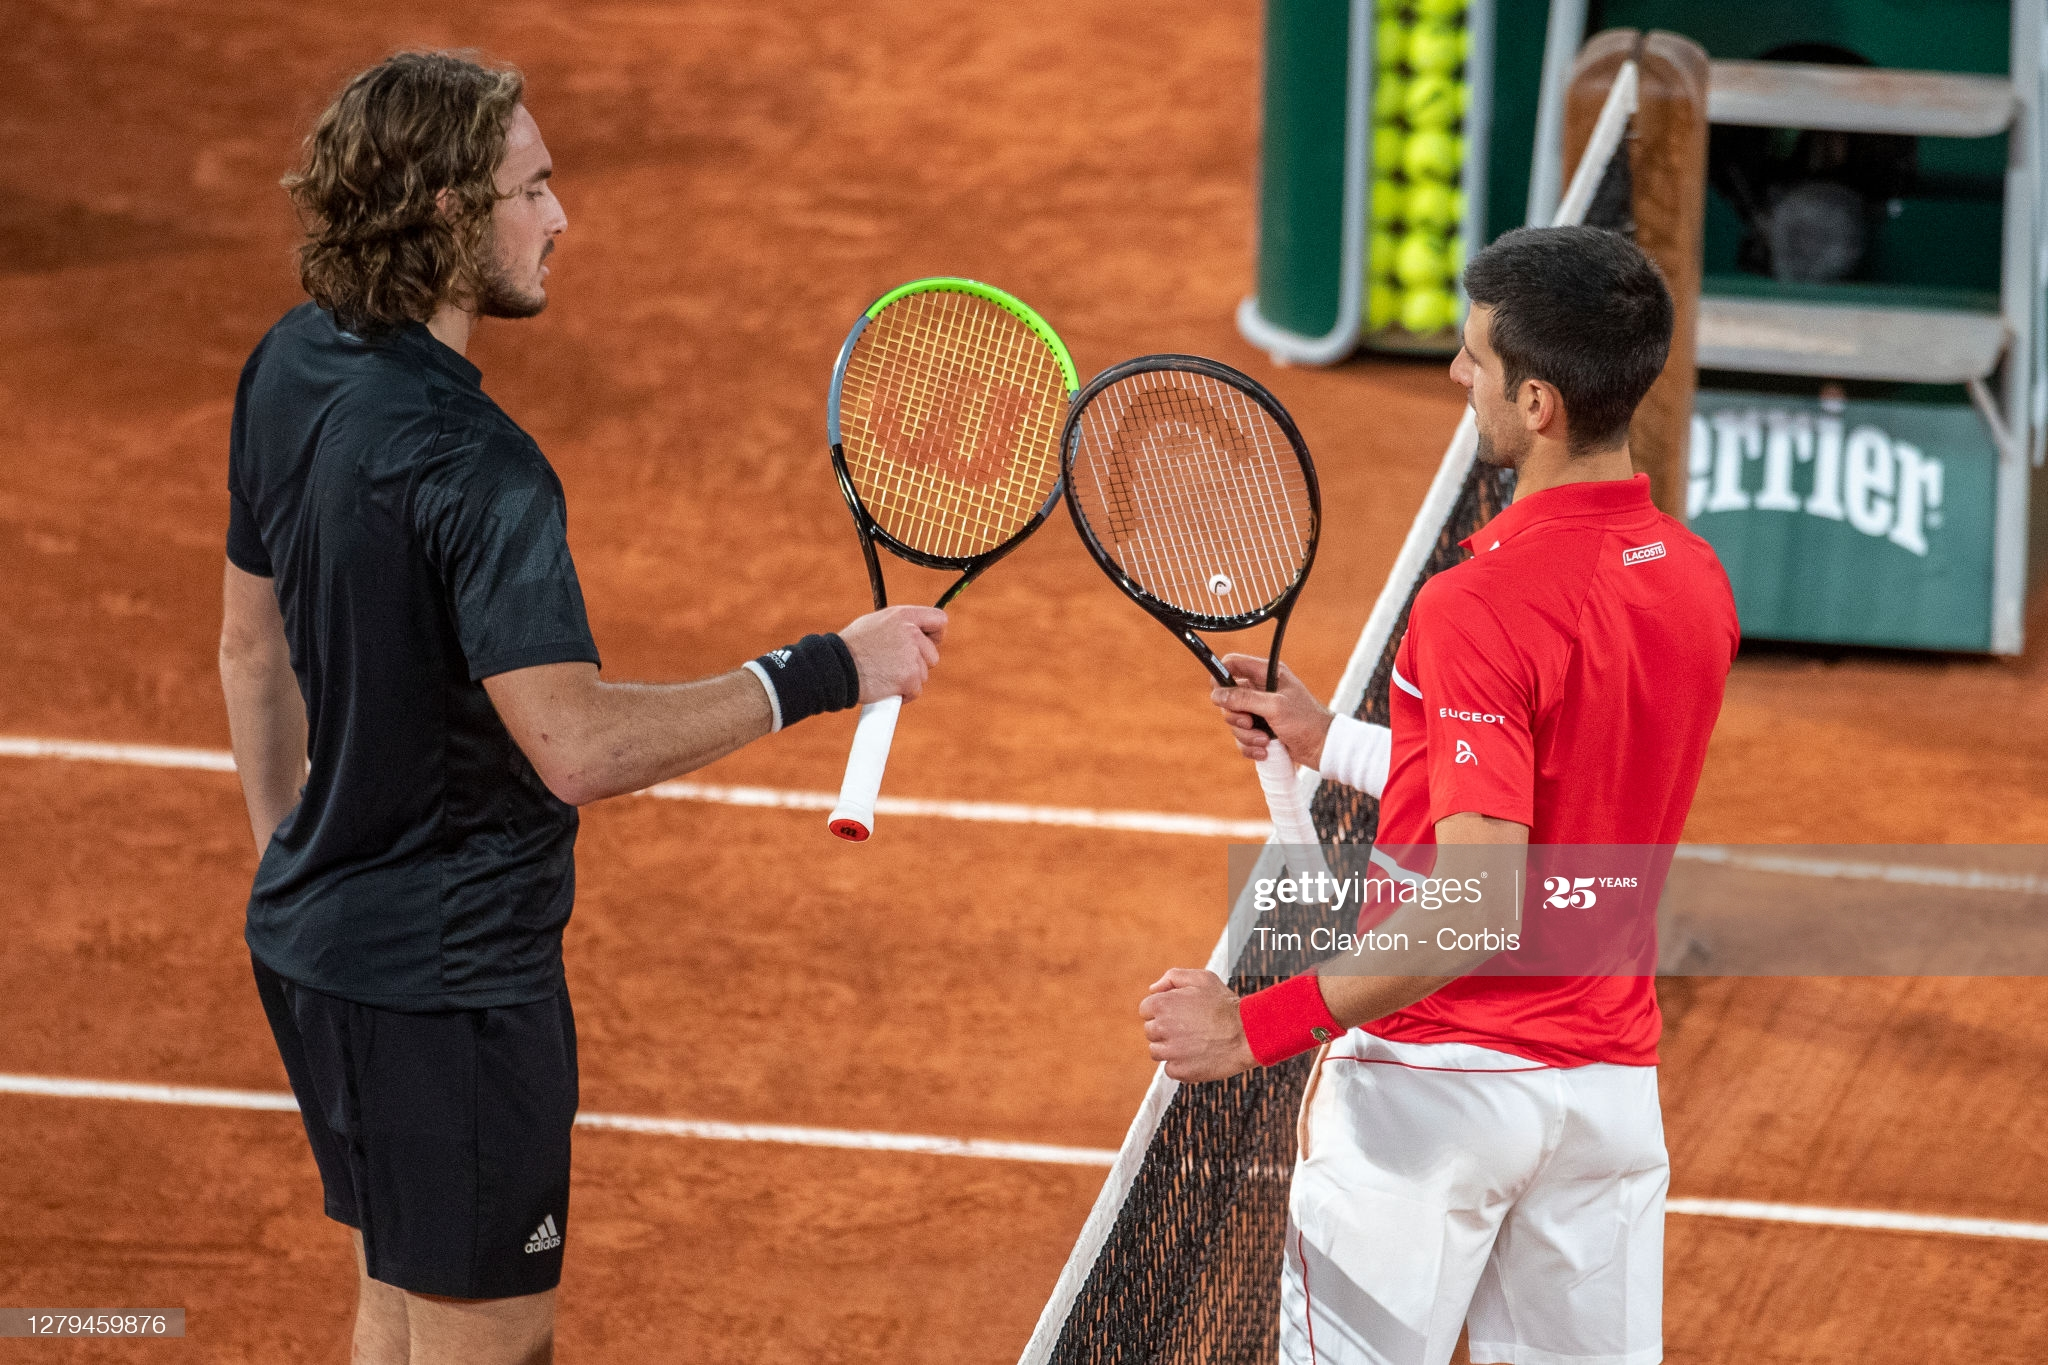 stefanos and nole french open day 13 2020